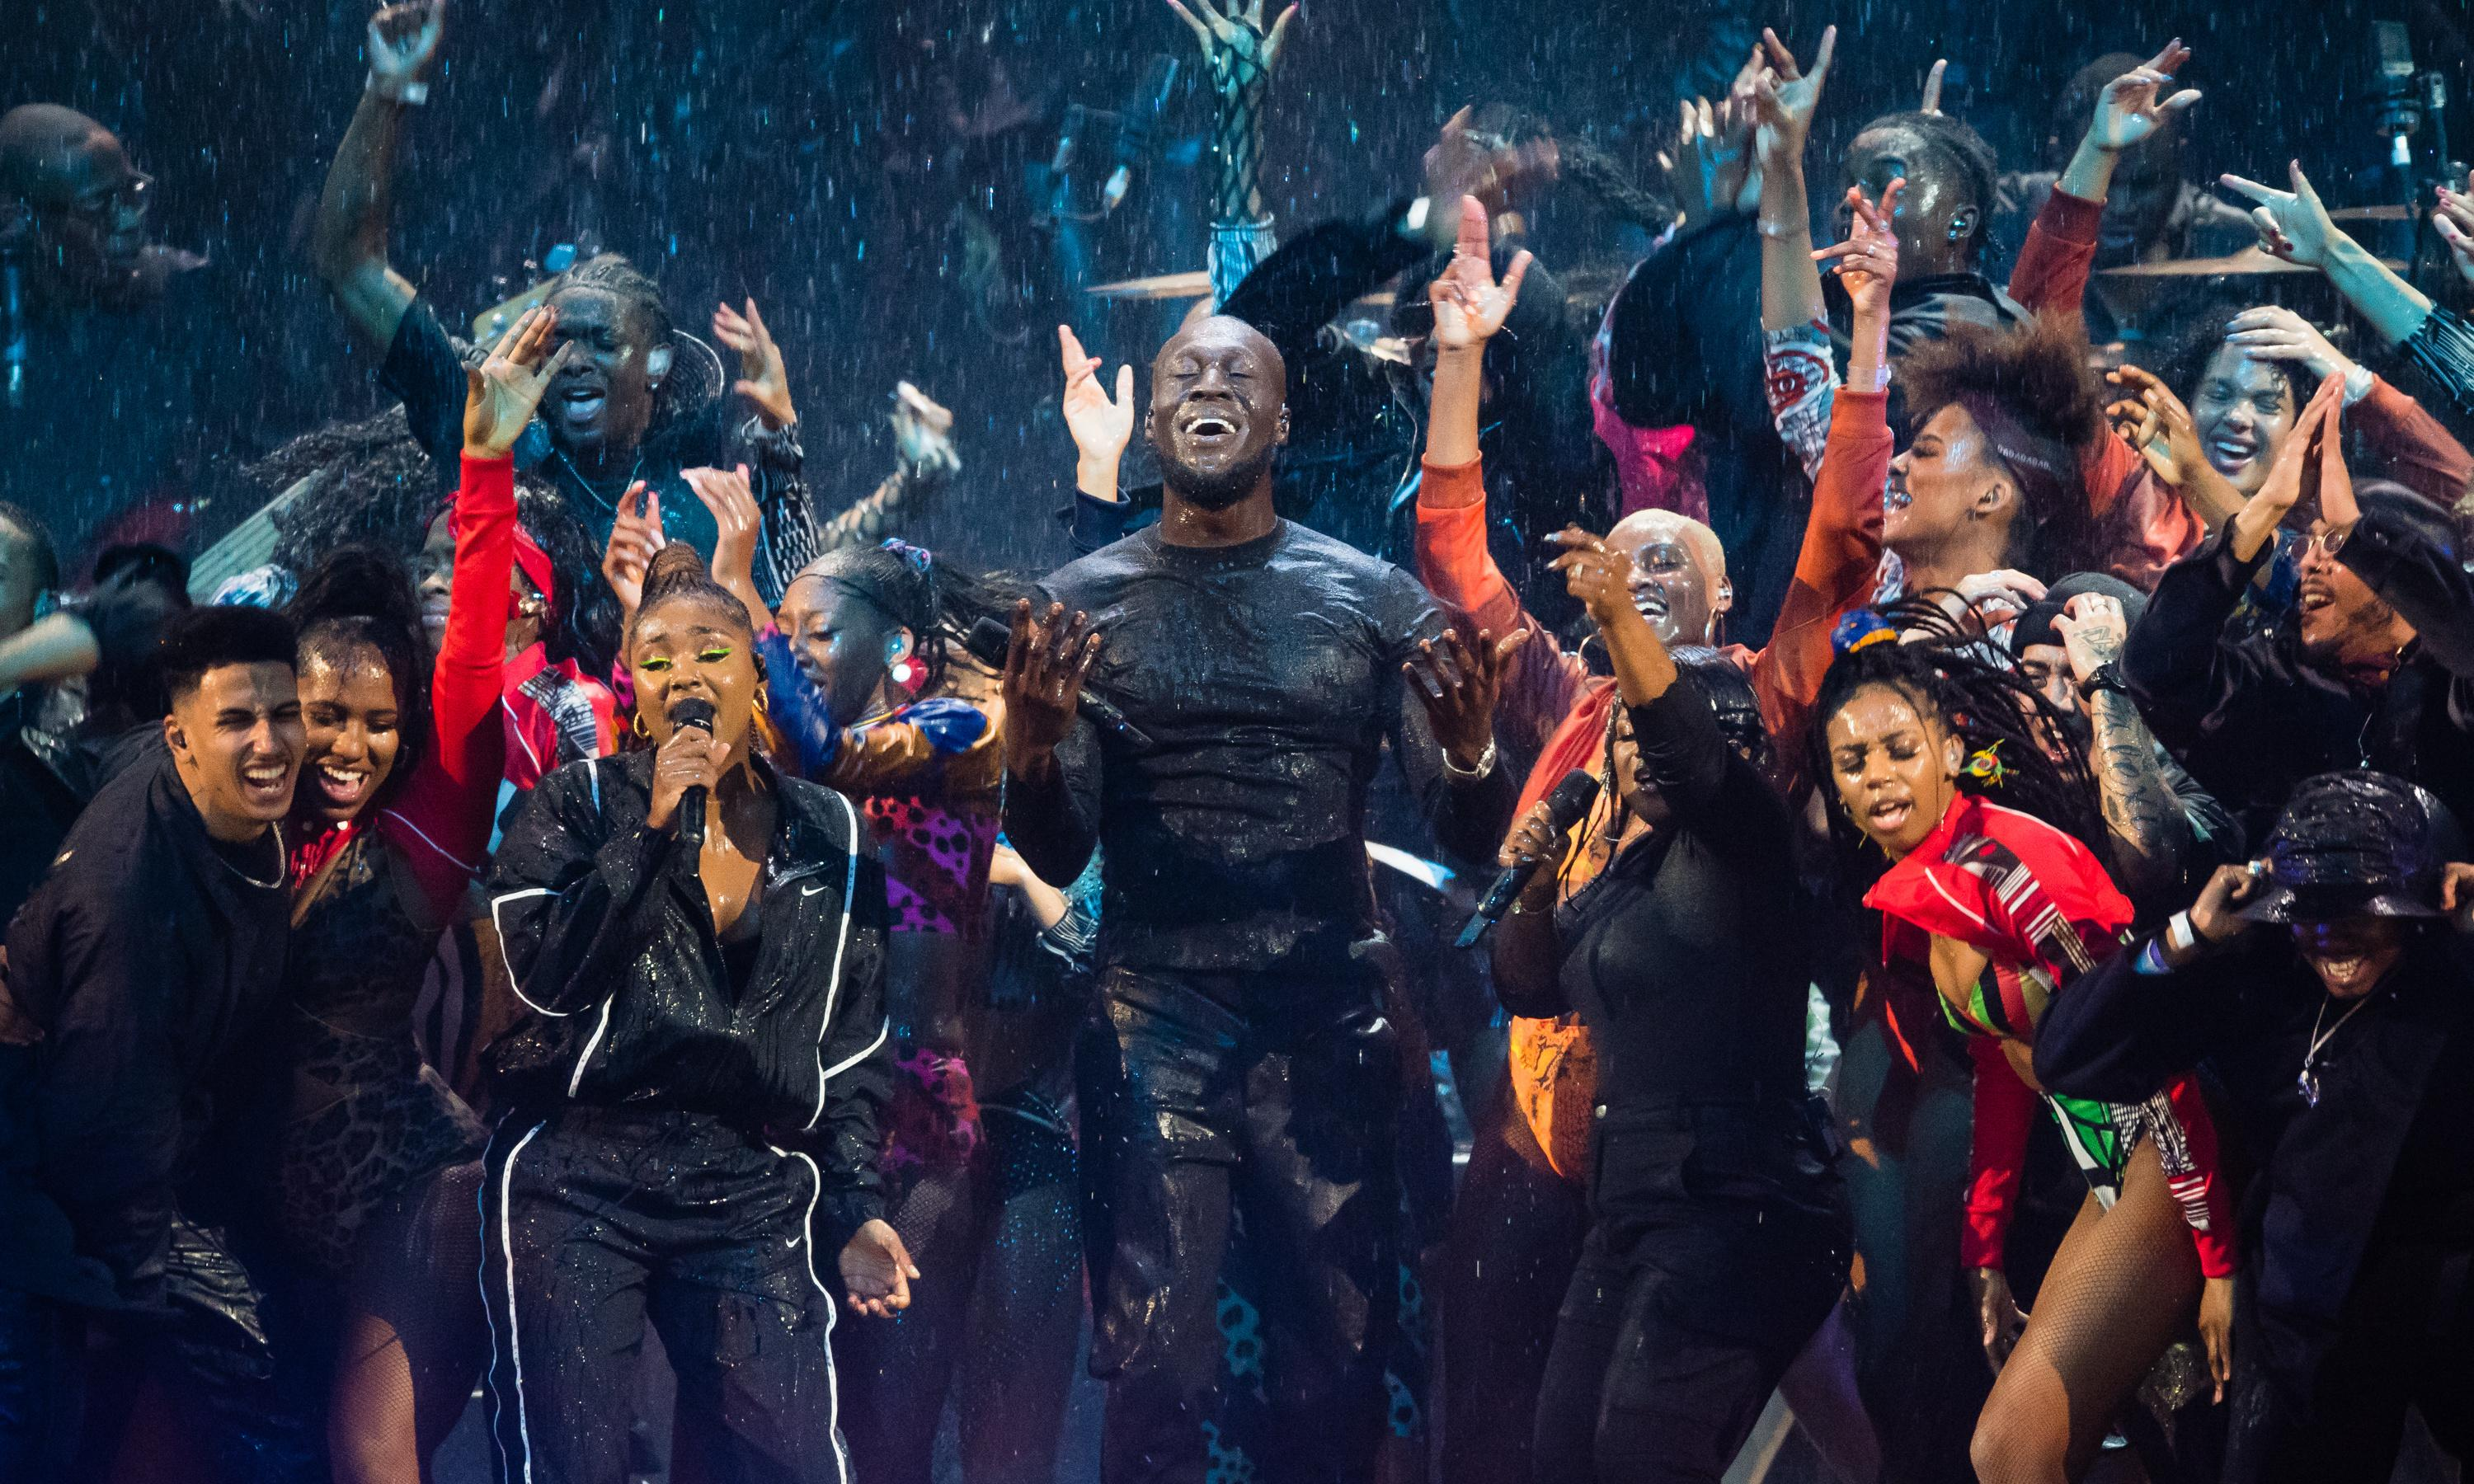 The Brit awards have become a platform for black politics – and brilliance